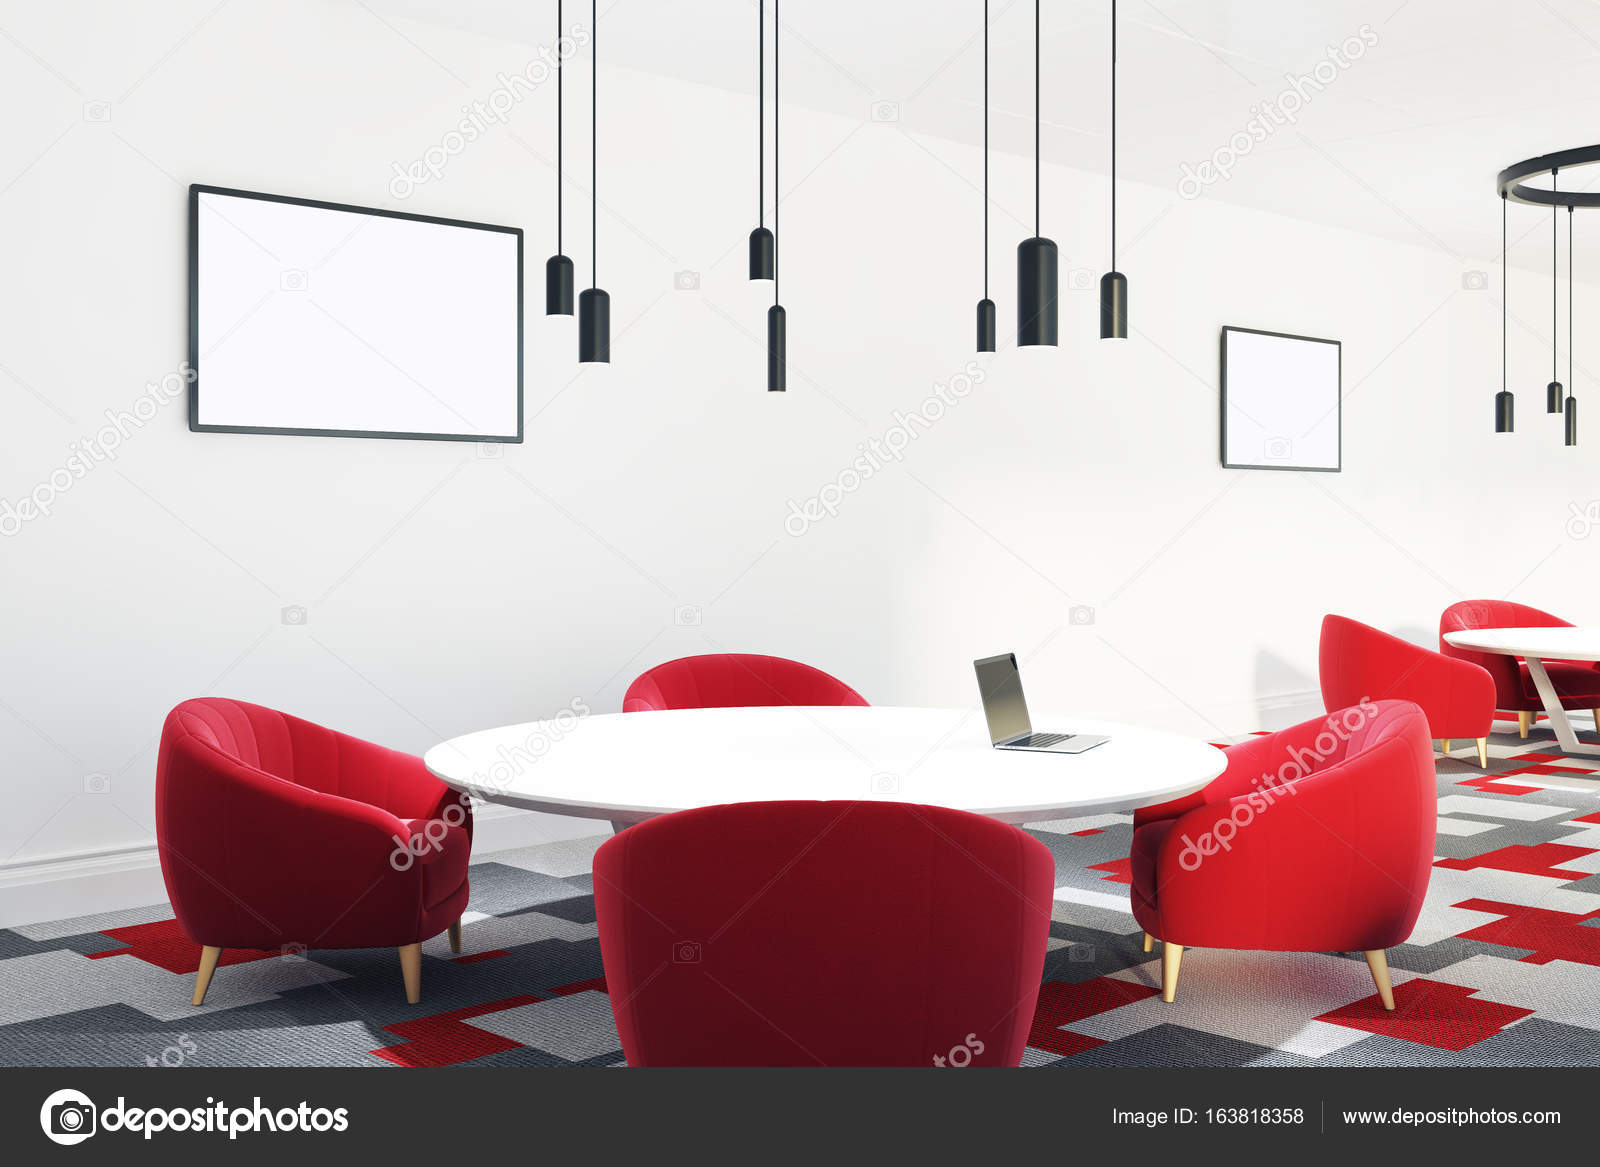 Open Office With Red Chairs Posters Round Stock Photo